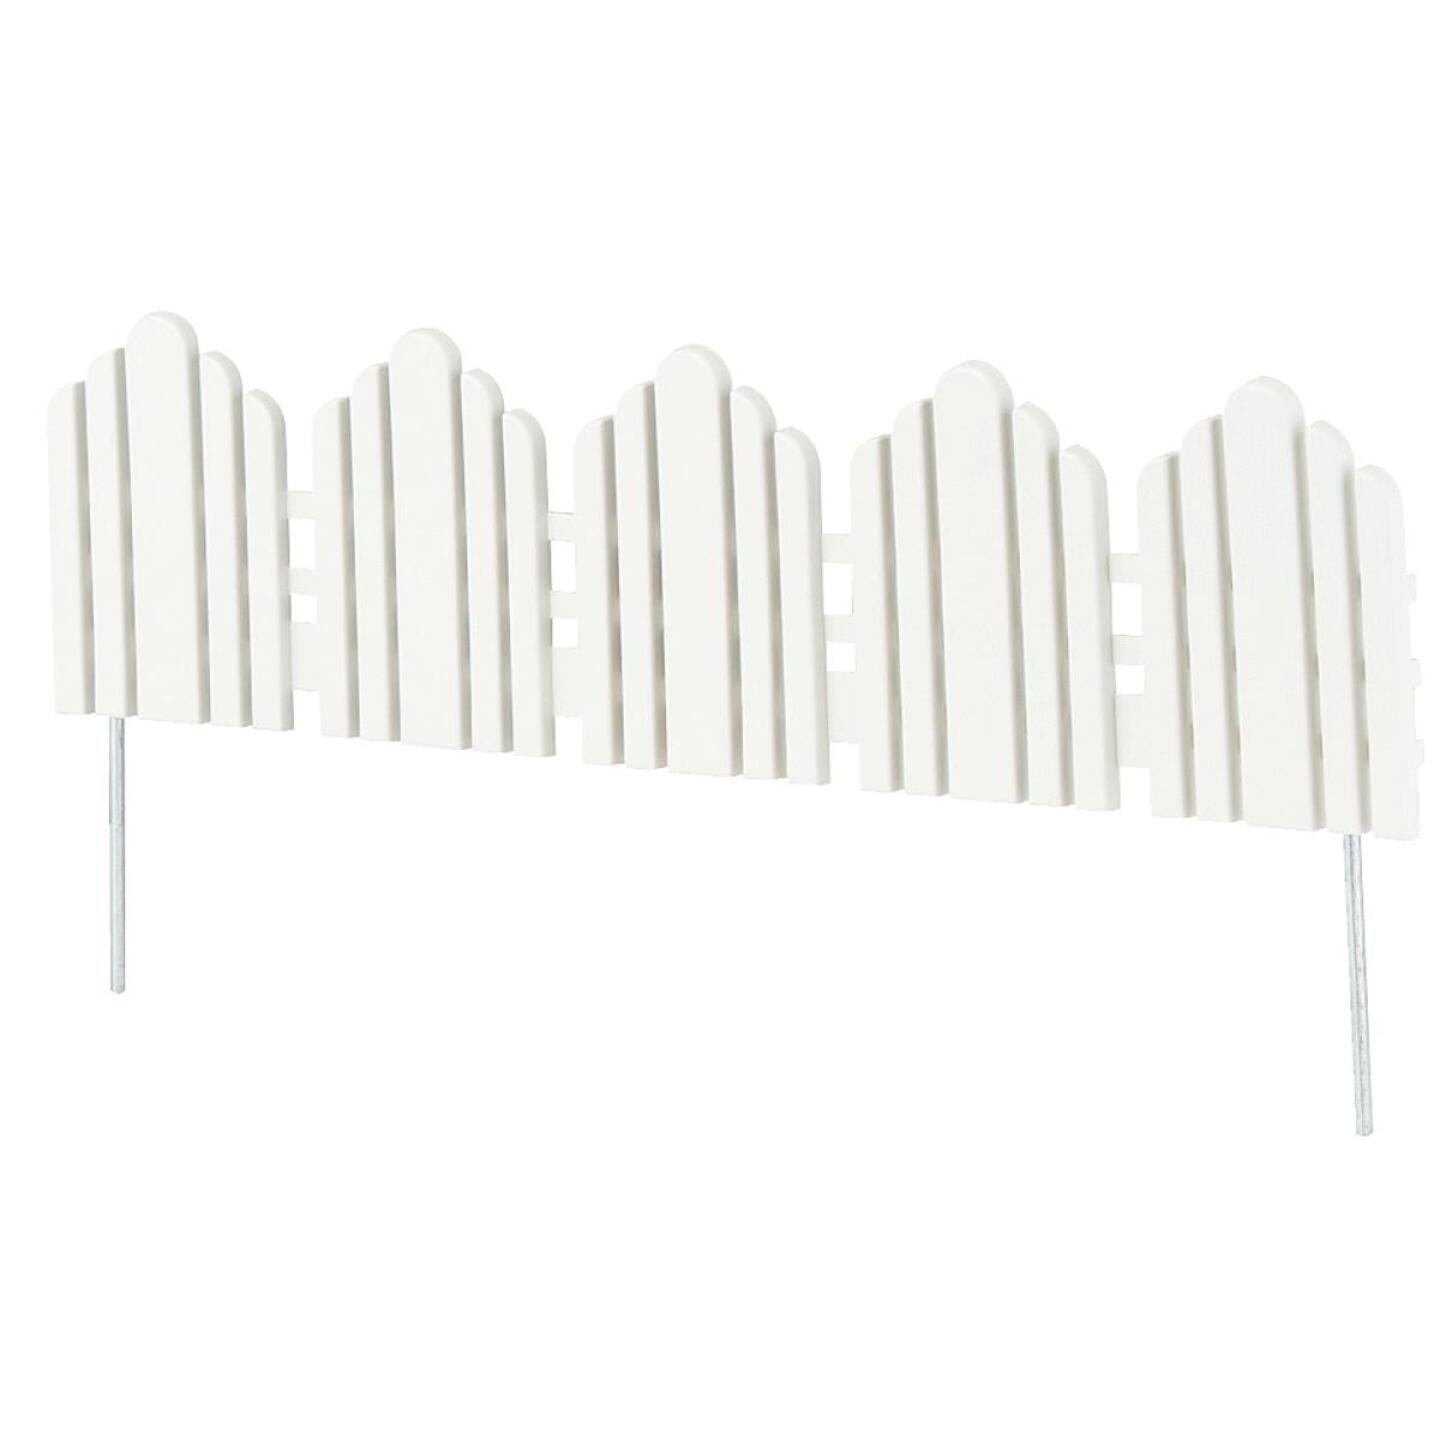 Adirondack 6 In. H x 22.5 In. L Poly Decorative Border Fence Image 1